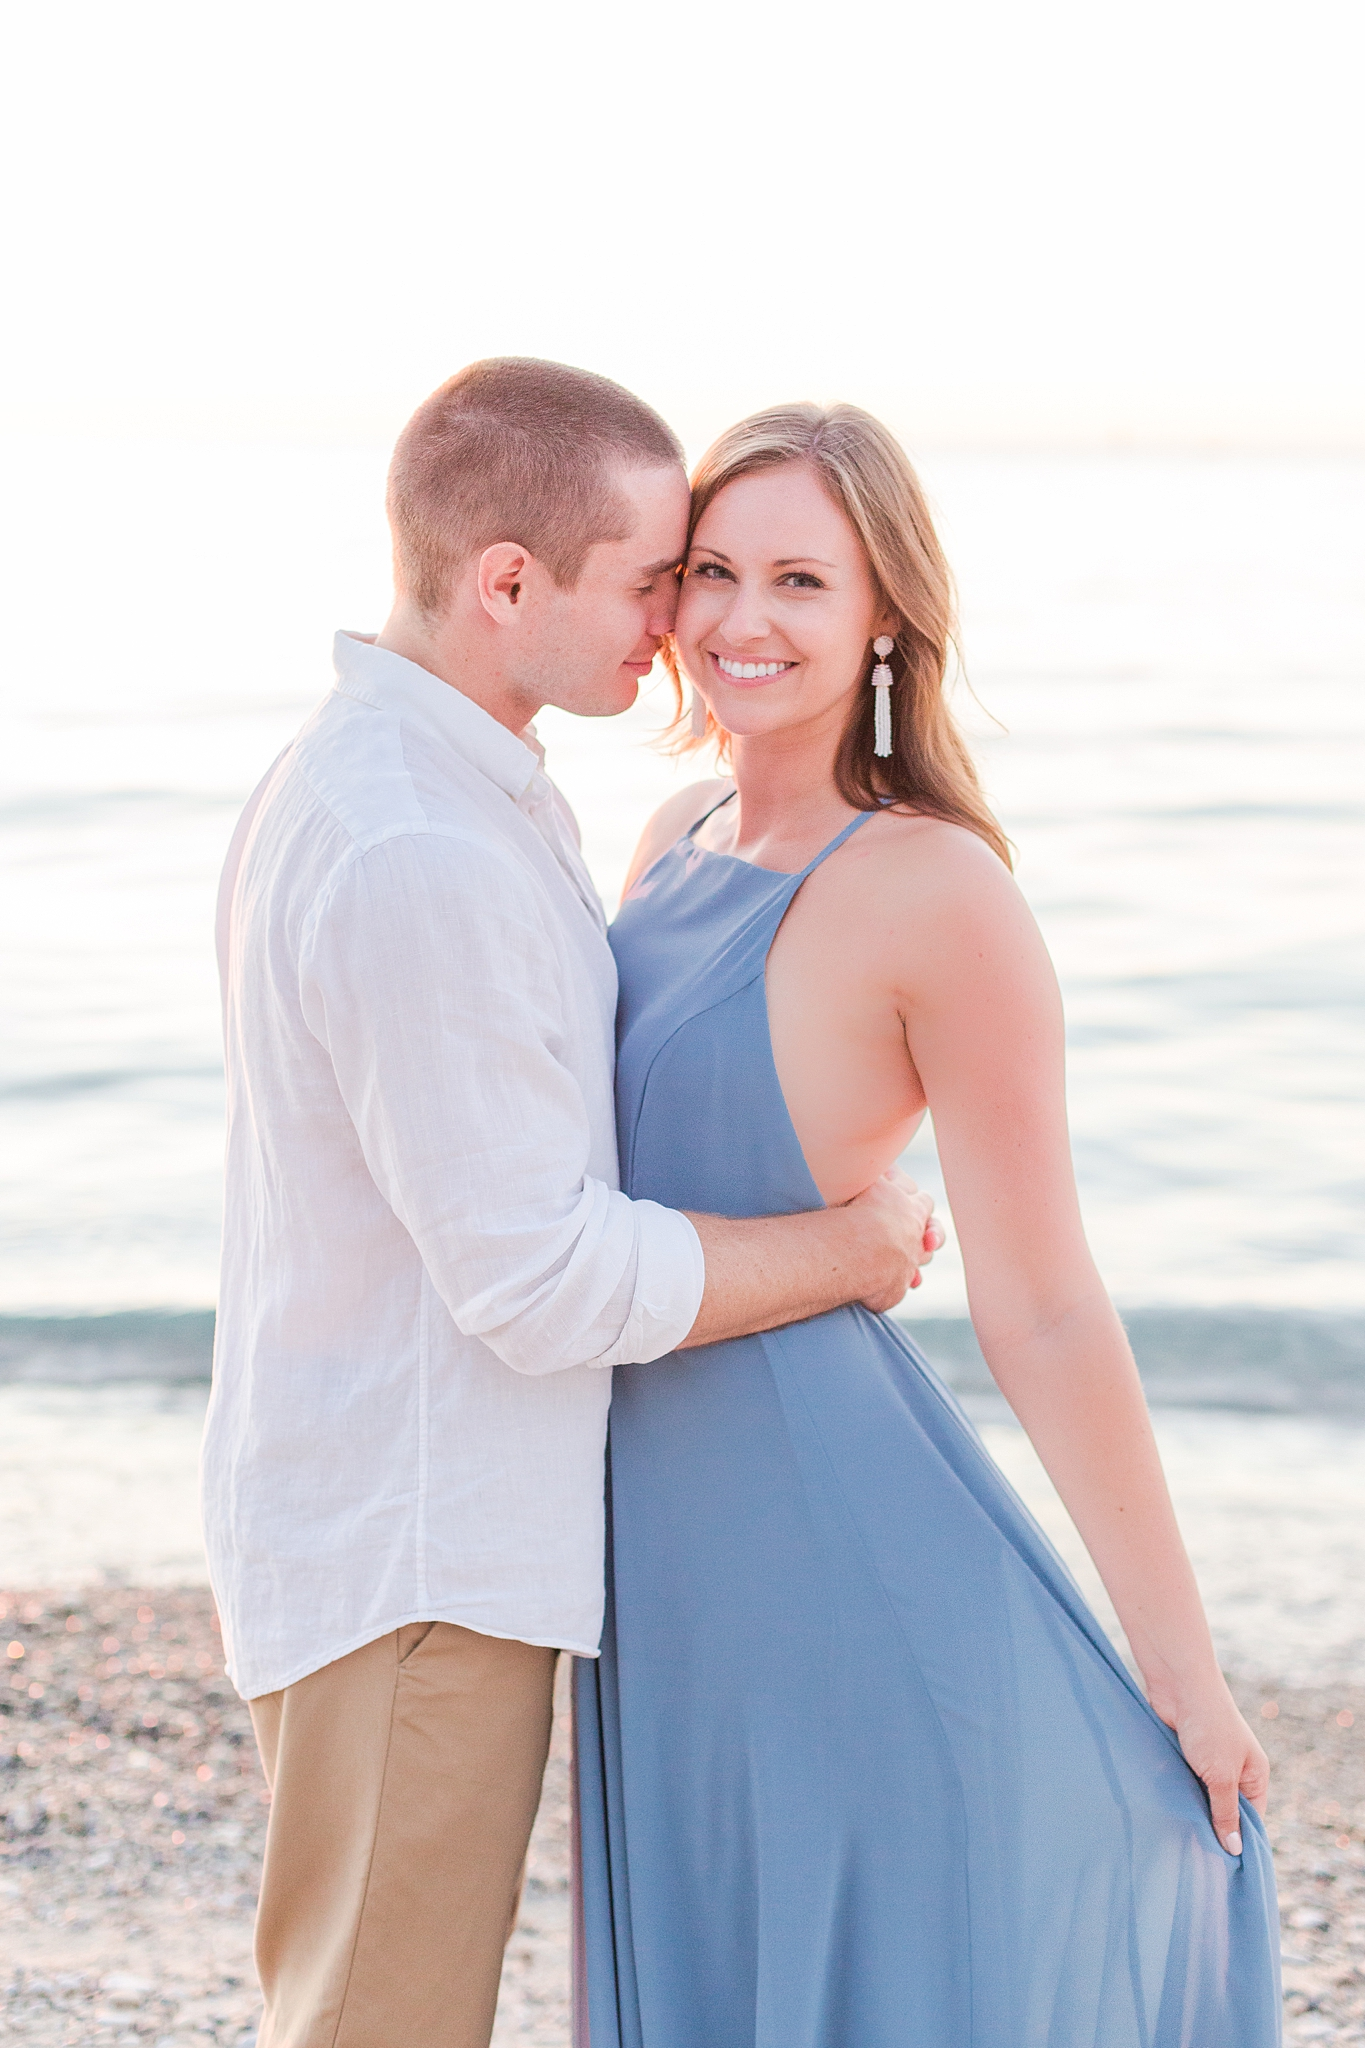 waterfront-lighthouse-engagement-photography-in-charlevoix-mi-by-courtney-carolyn-photography_0017.jpg